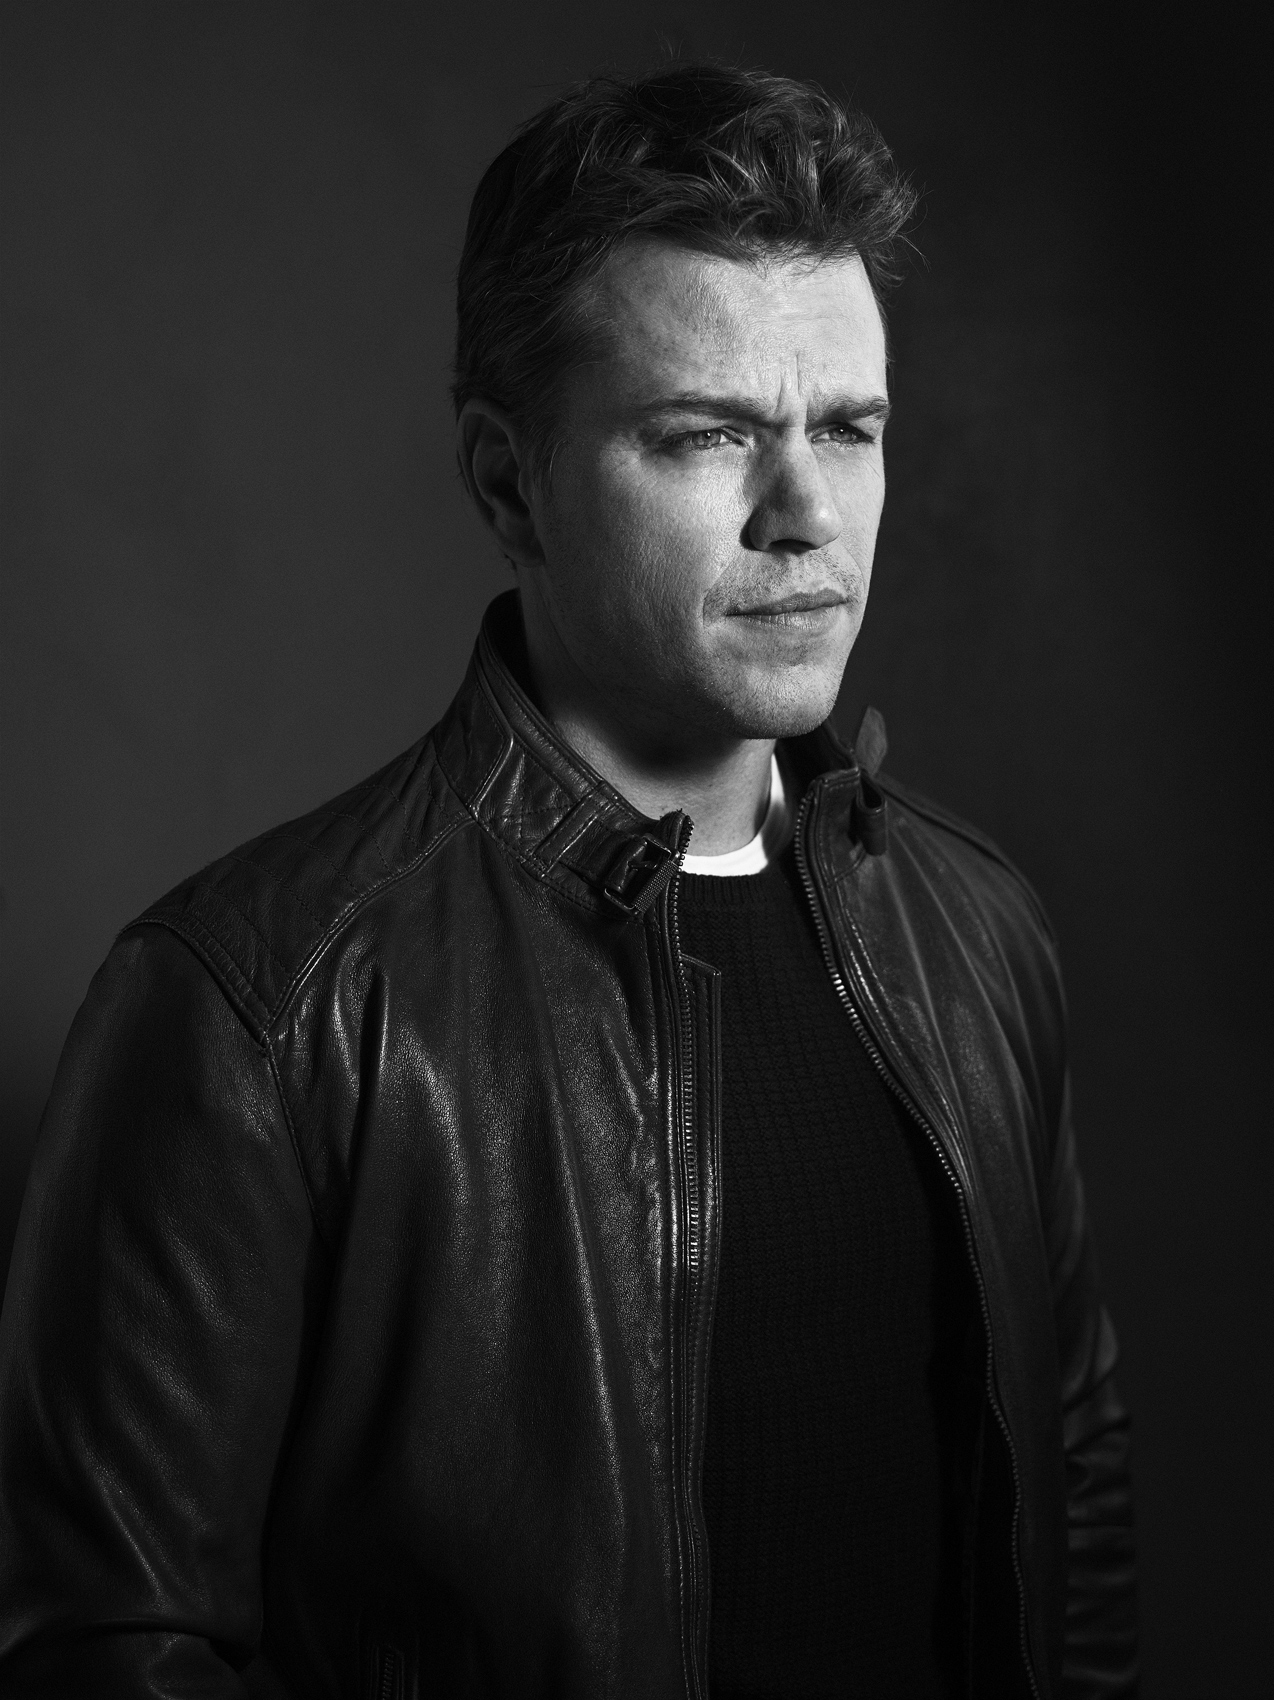 20150217_JR_MattDamon_0070B_flat_web_v3